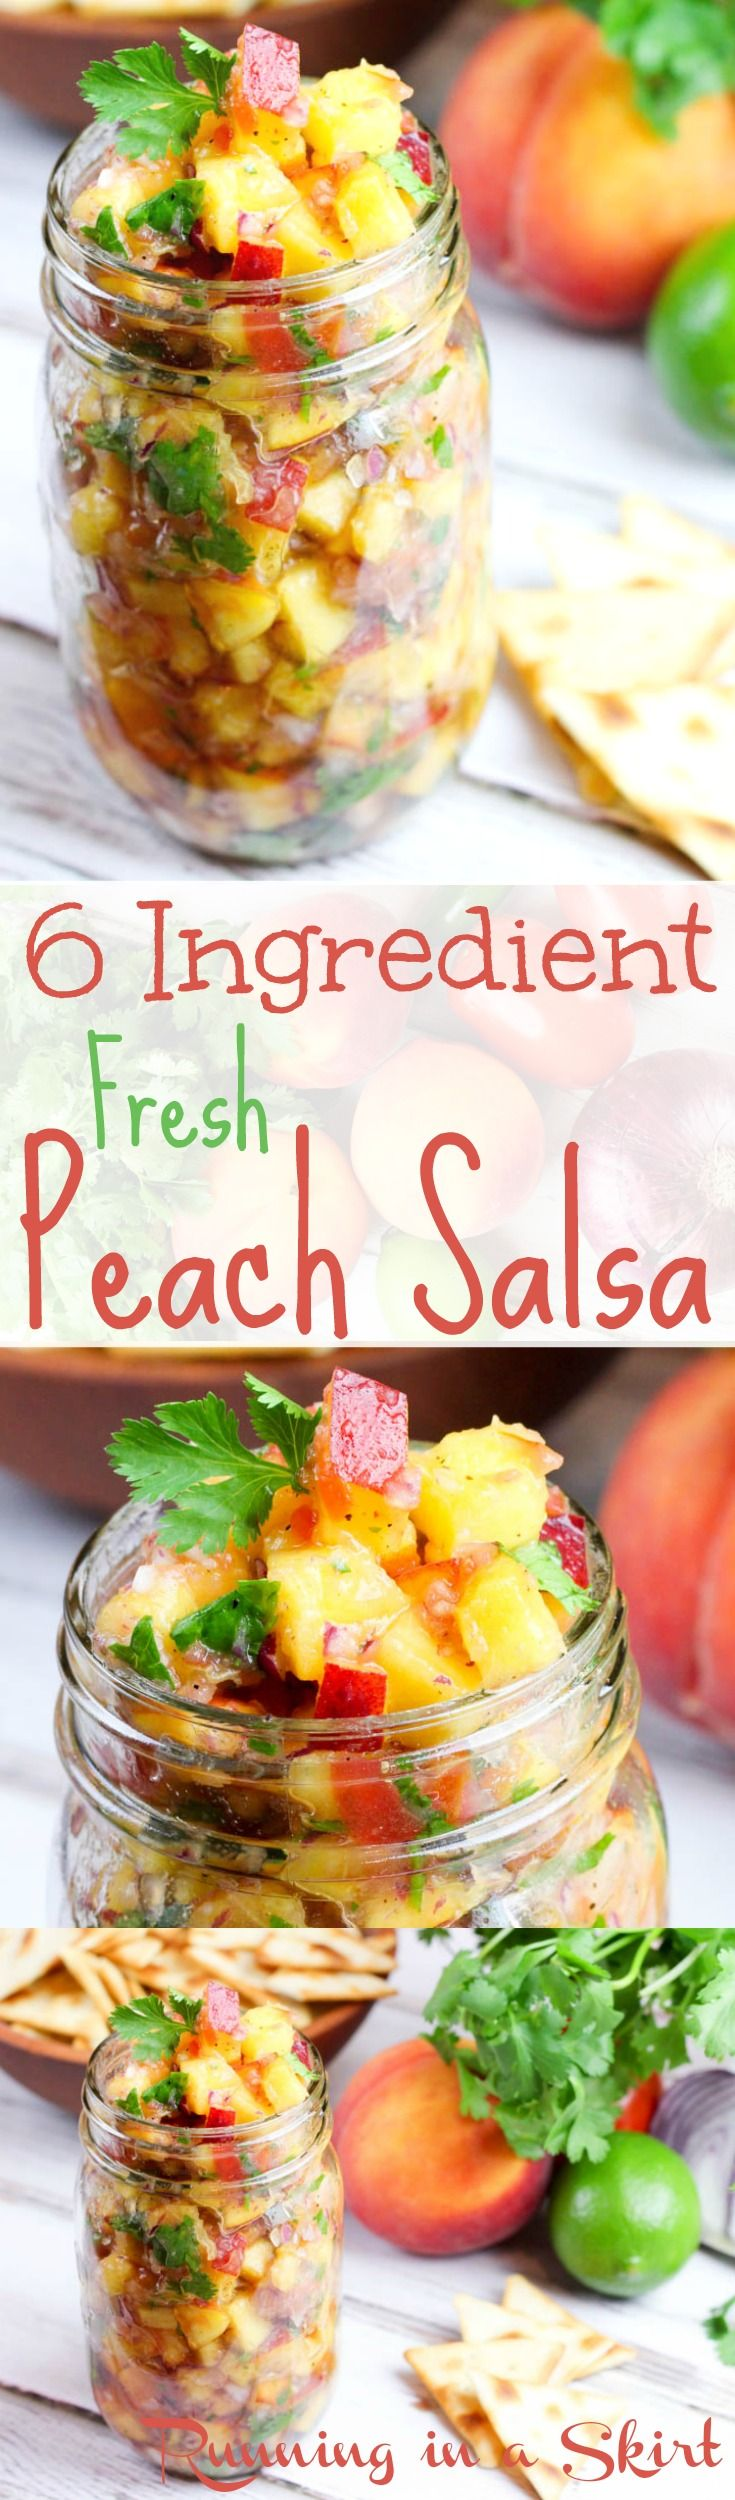 Fresh Peach Salsa Recipe! A clean eating & quick summer recipe. This fresh fruit salsa recipe is perfect with chips or crackers. Topped with cilantro! Tastes amazing! | Running in a Skirt